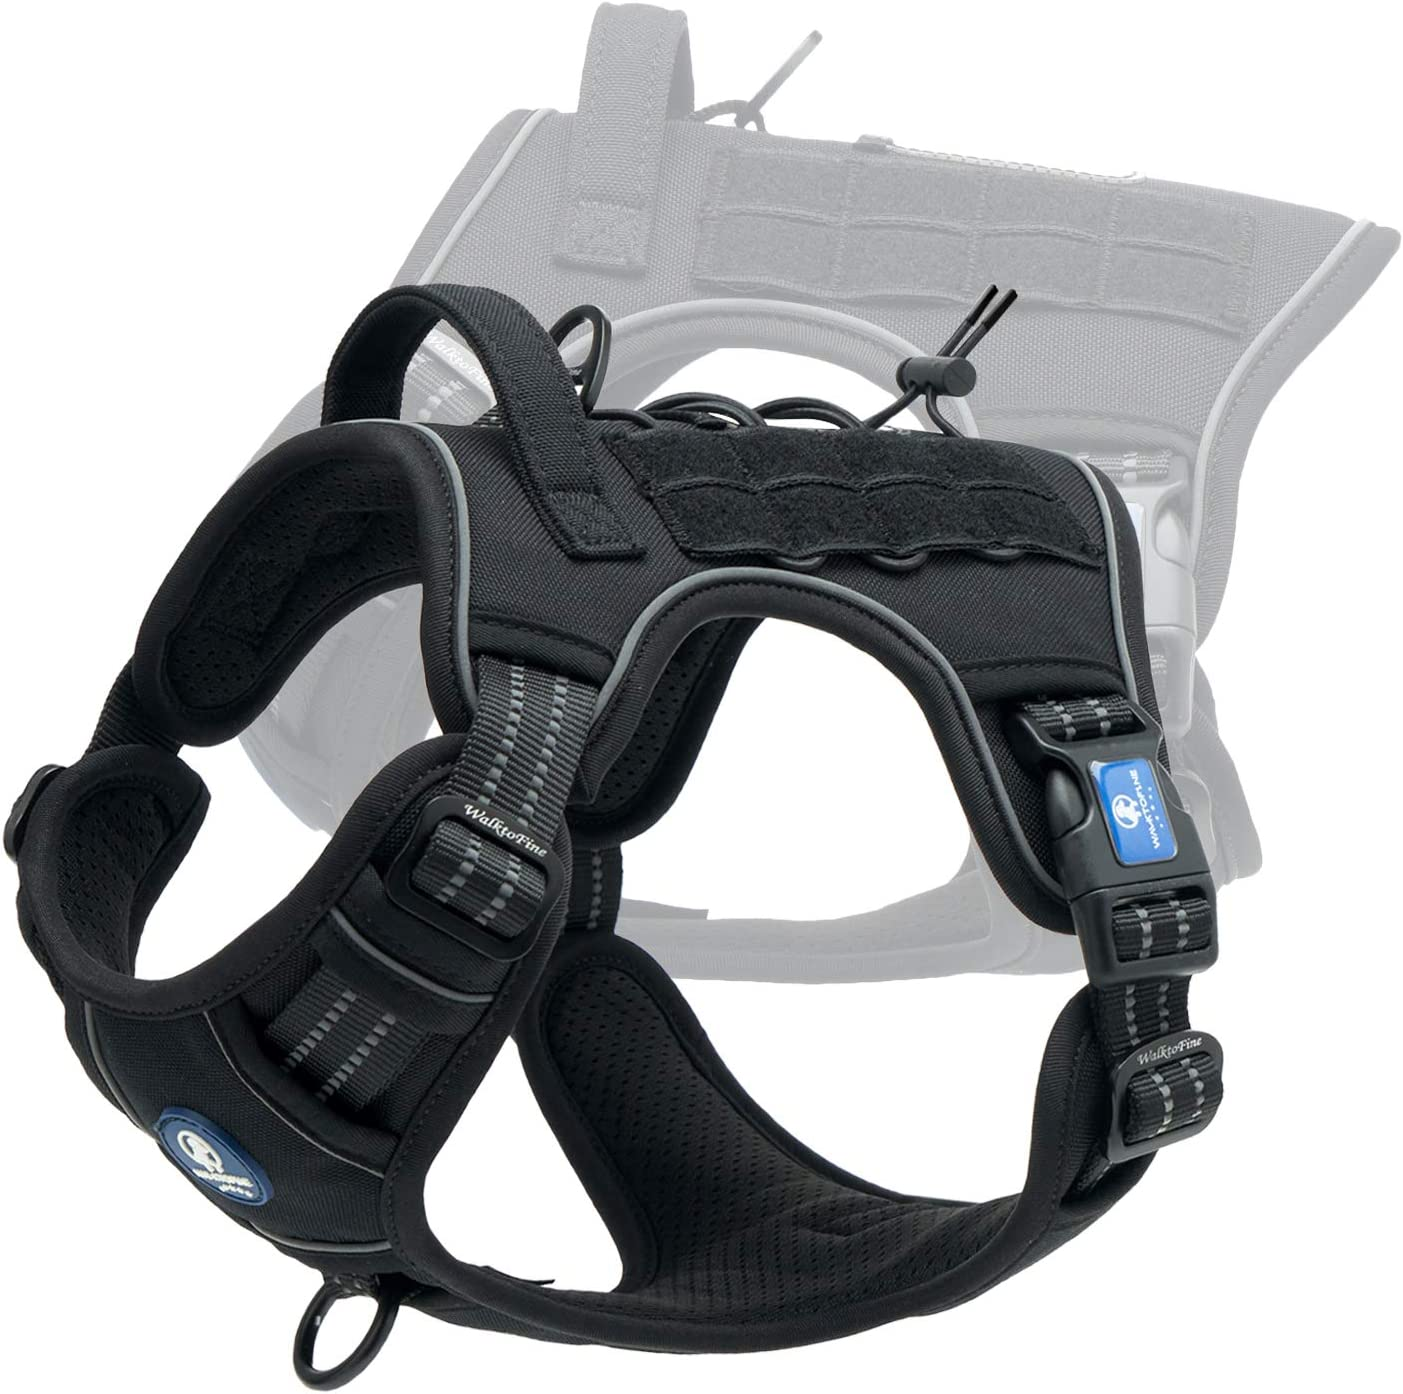 A close-up photo of a black dog harness with lock buckles on the side.